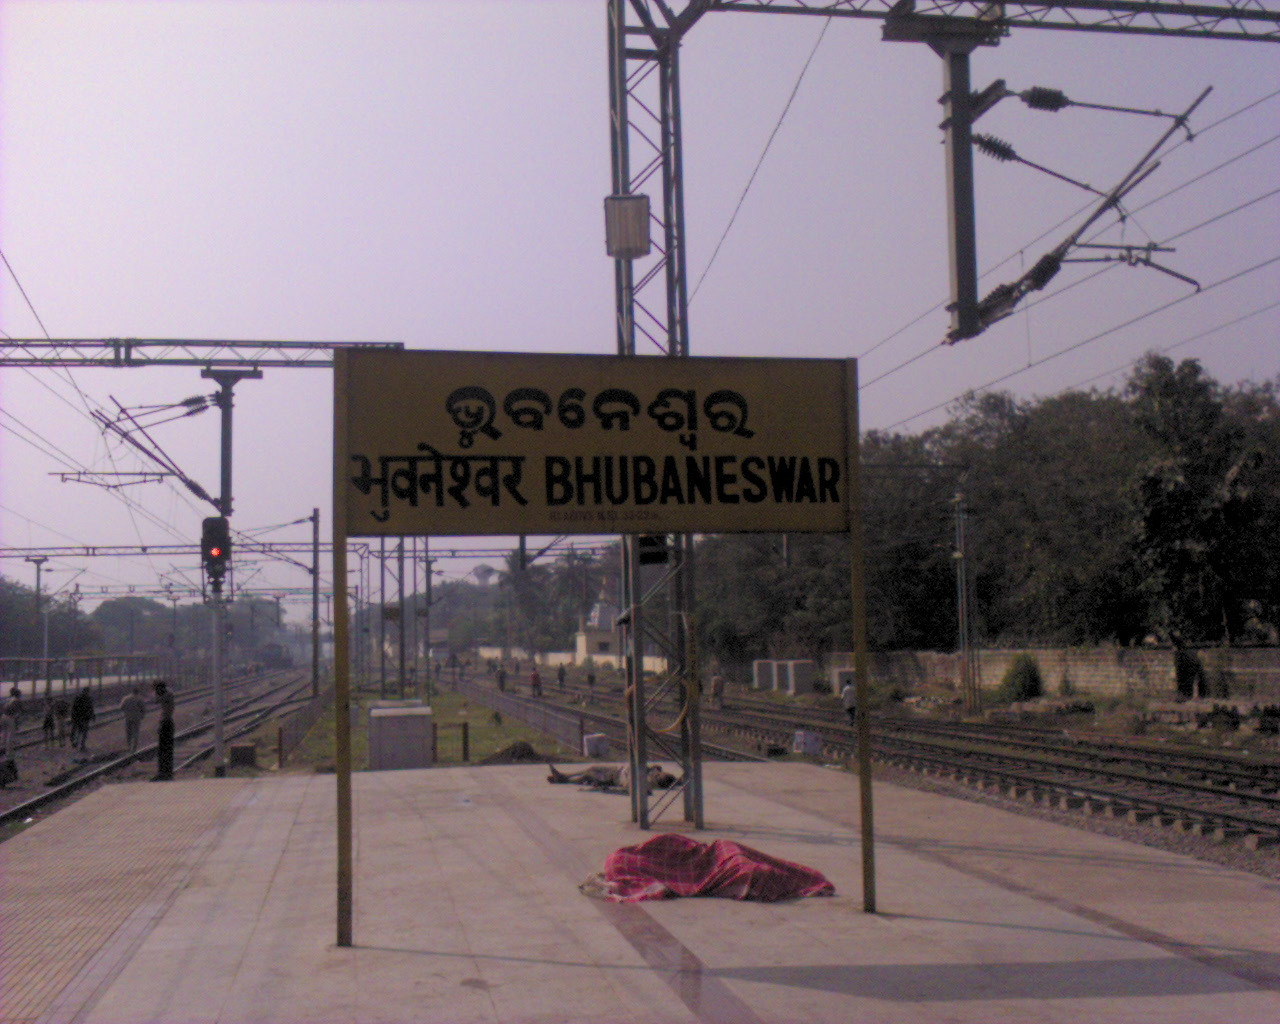 Travel to Bhubaneshwar